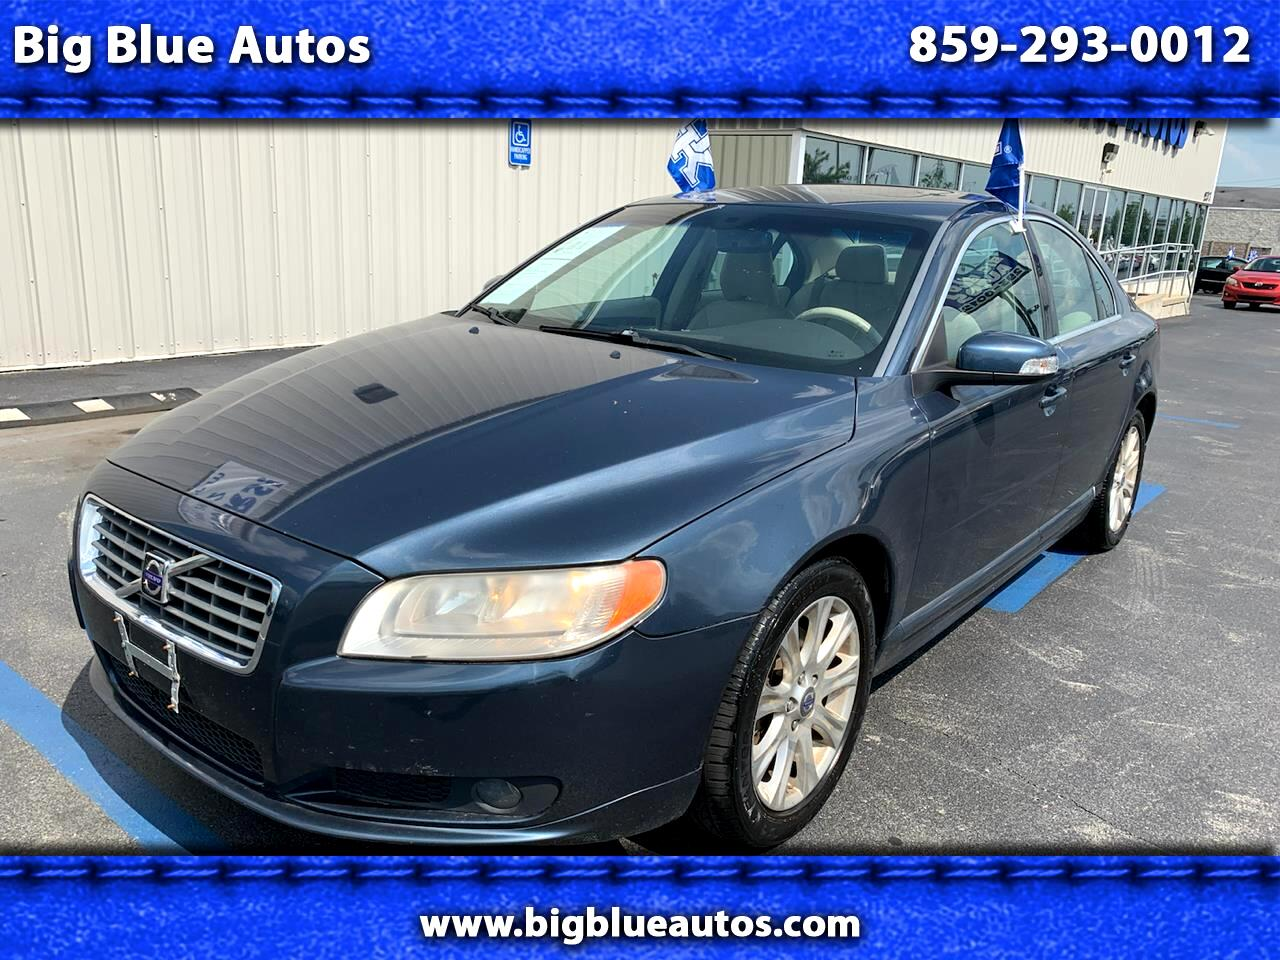 Volvo S80 4dr Sdn I6 FWD 2009